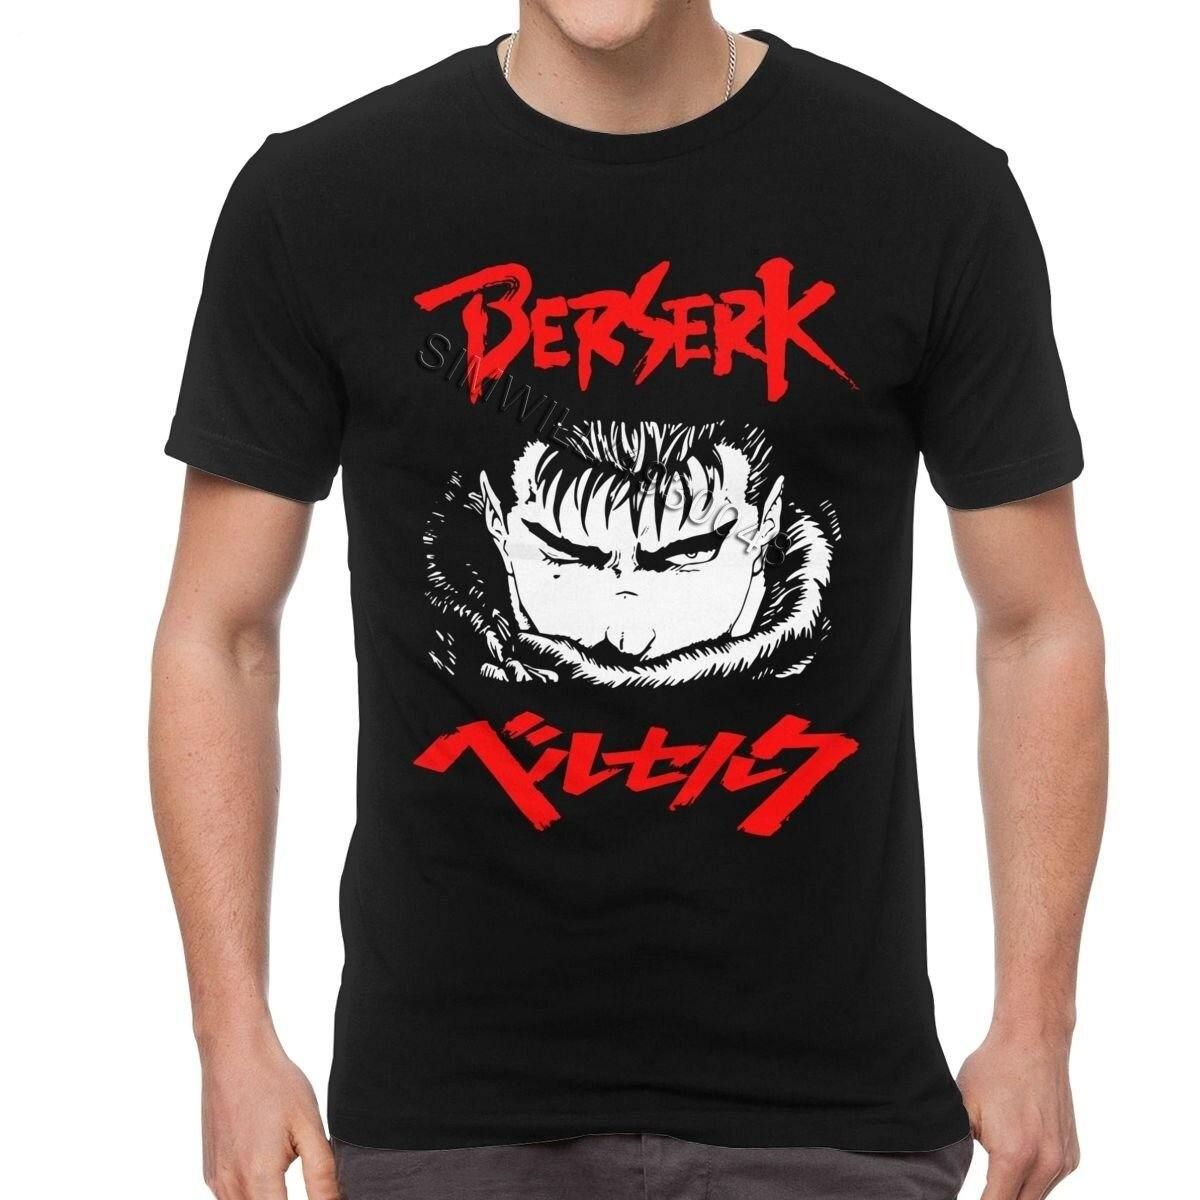 Berserk Golden Age Guts T Shirt